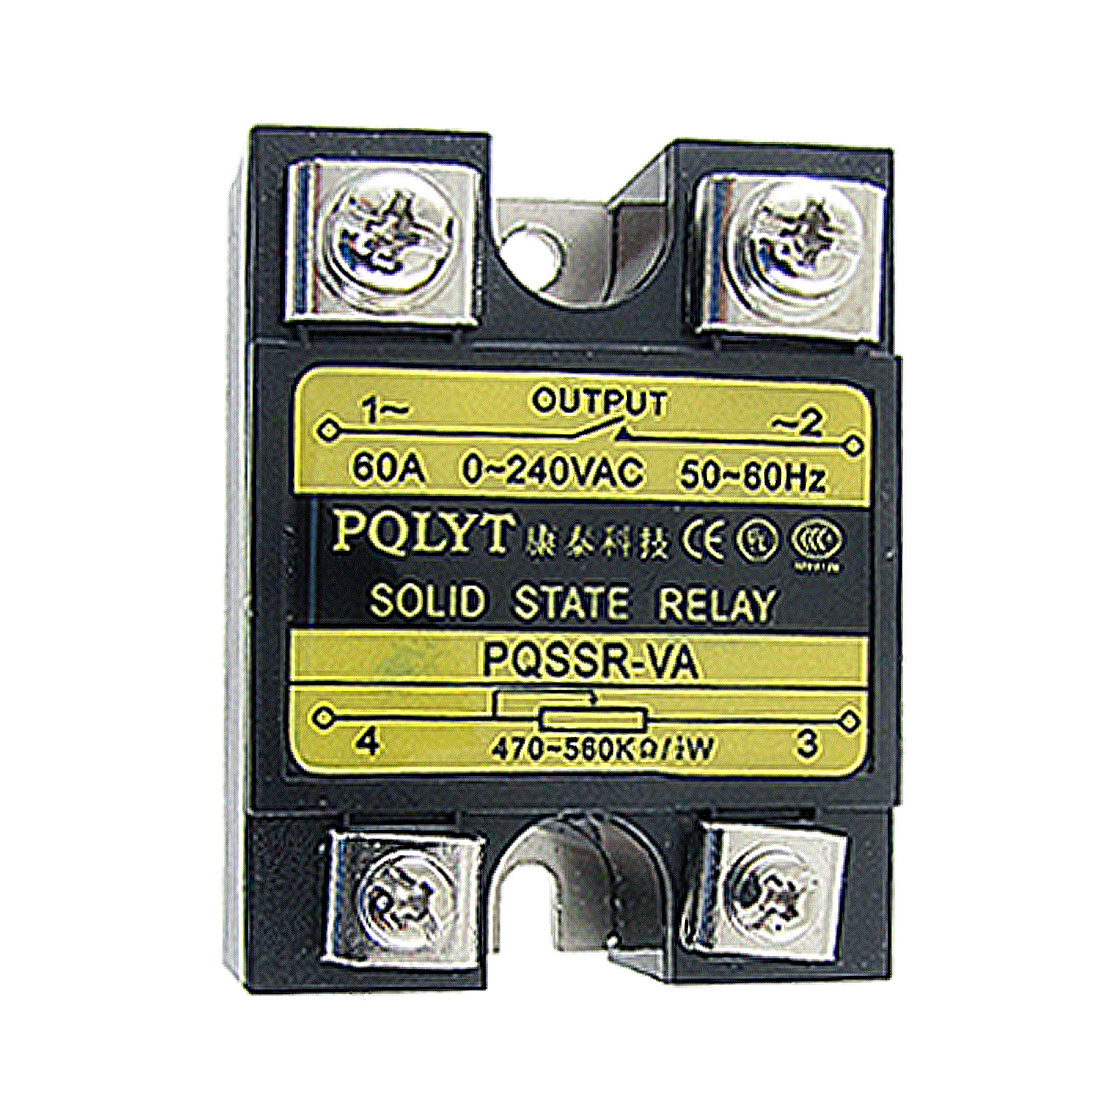 60A 0-240V AC SSR-60VA Solid State Relay Voltage Resistance Regulator